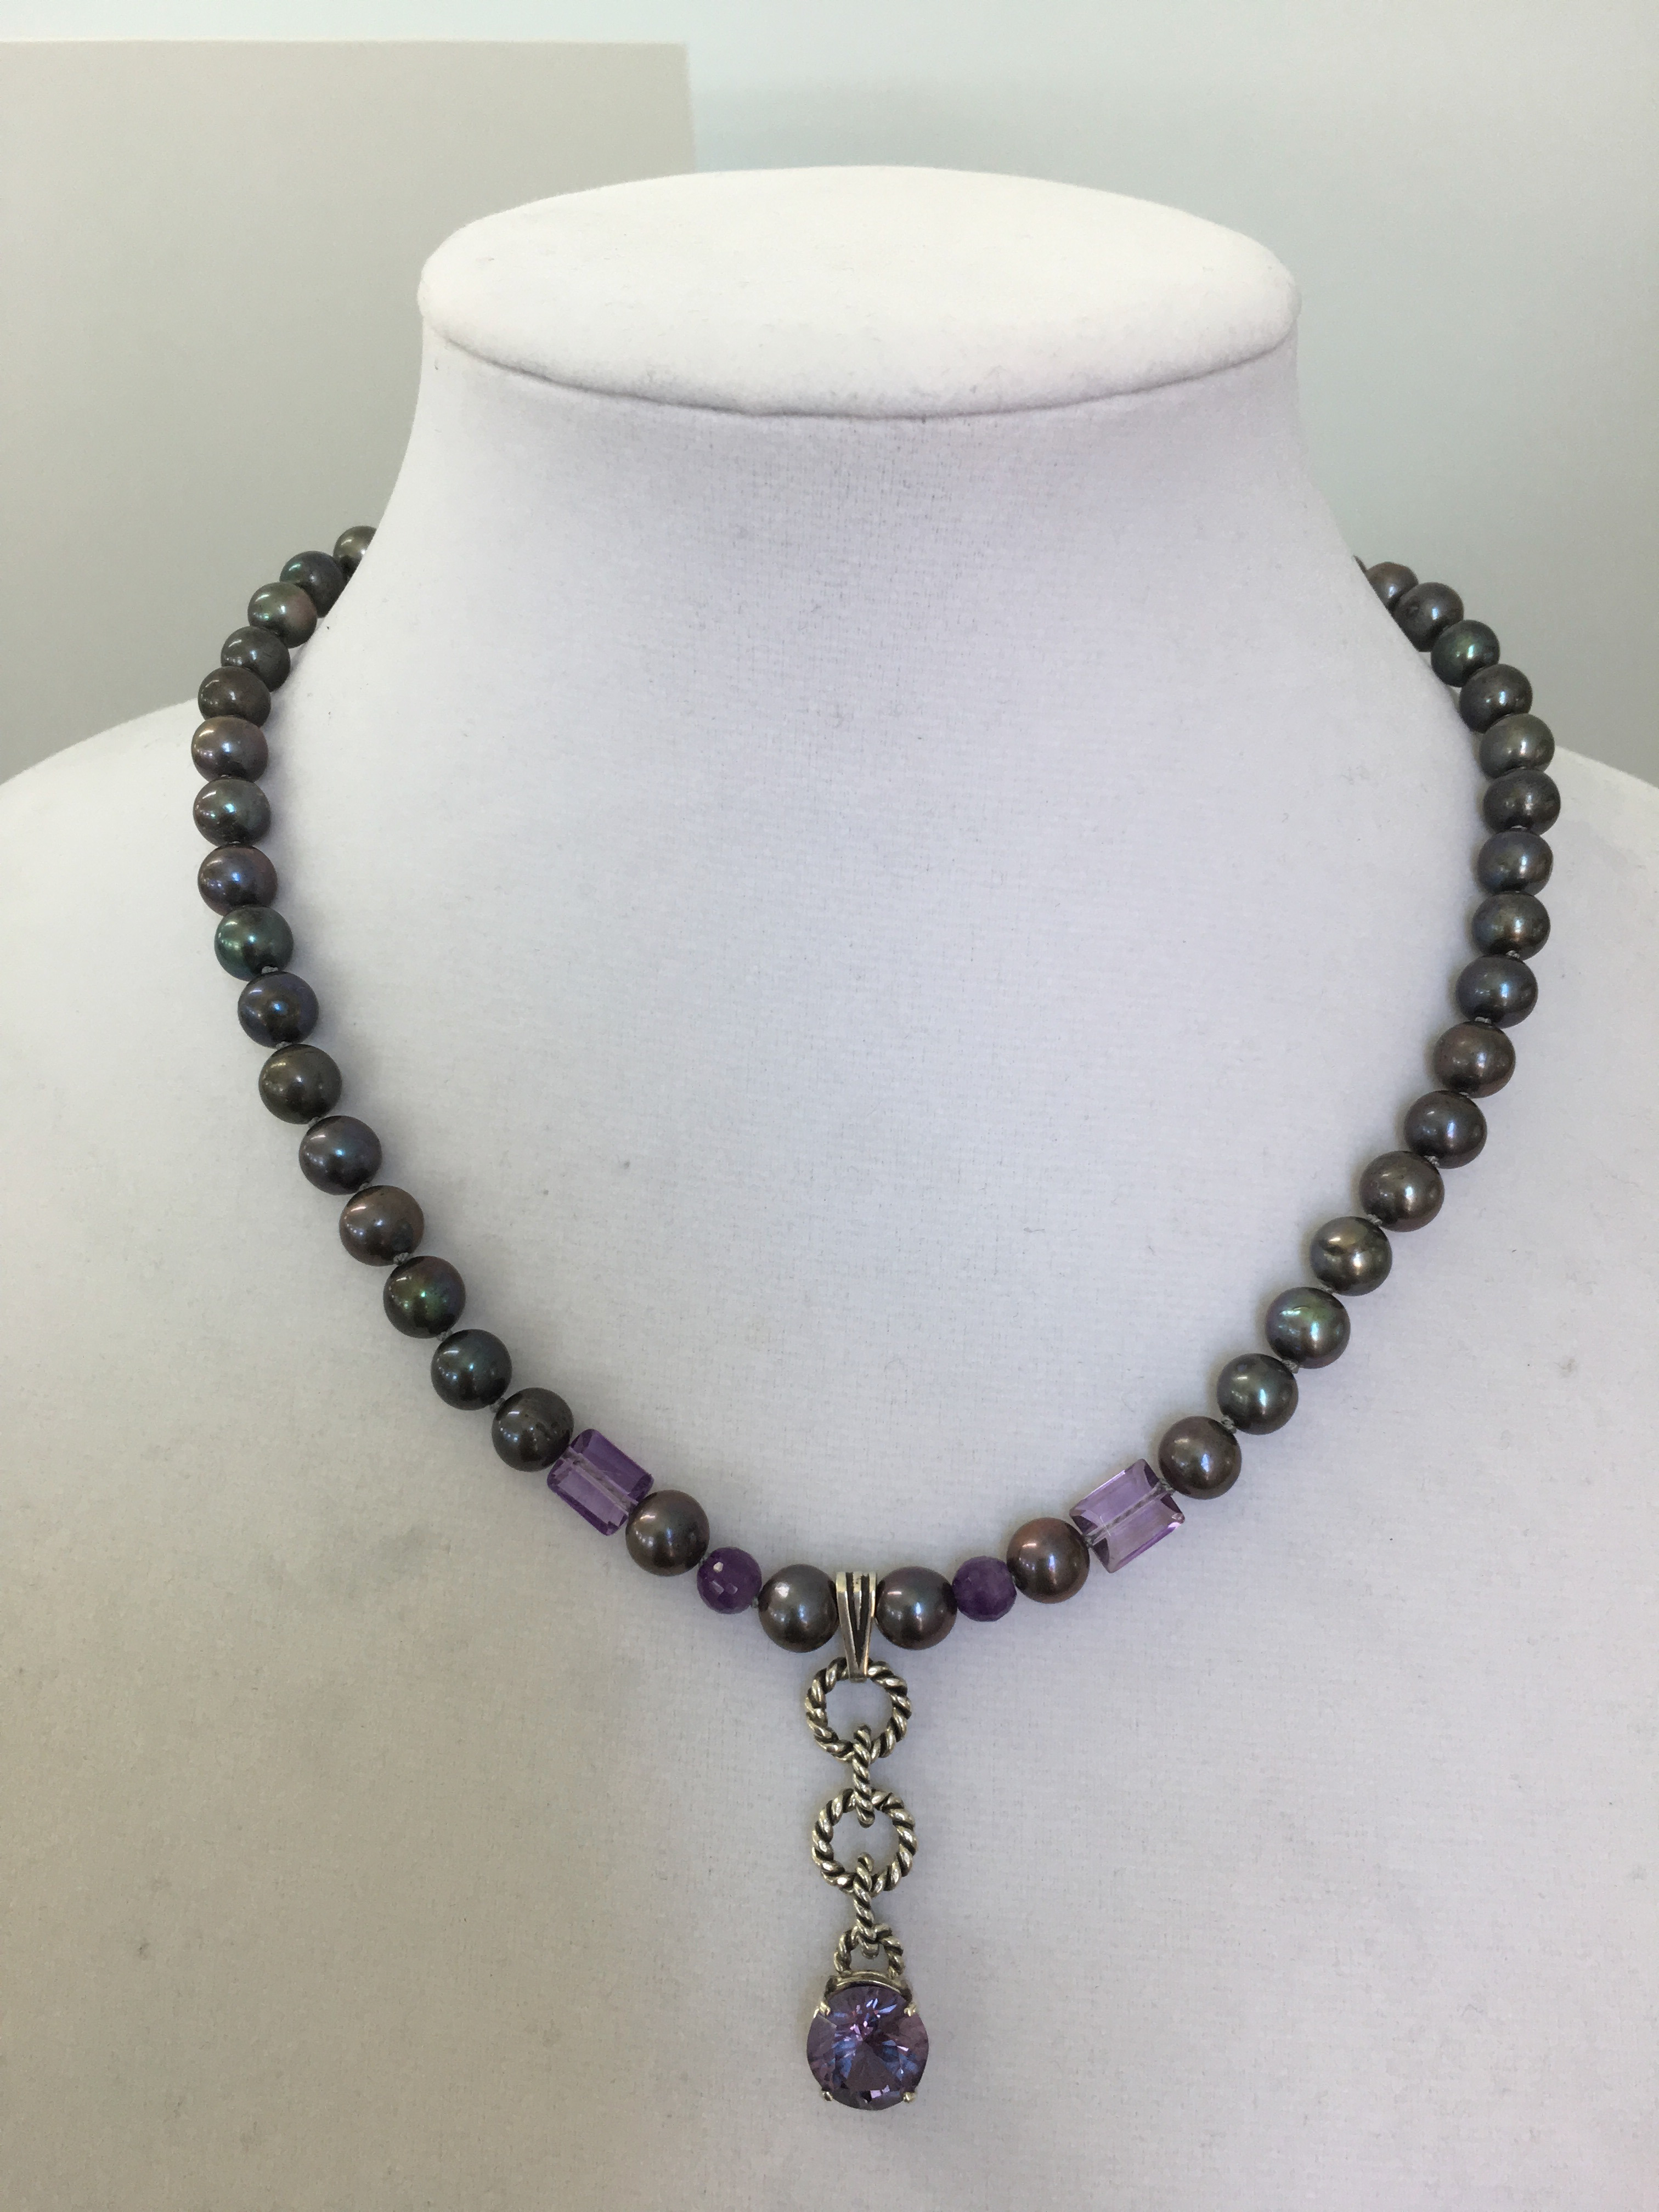 Sterling Silver Necklace w/Freshwater 8mm pearls, emerald shape amethyst & a Amethyst S.S. Pendant